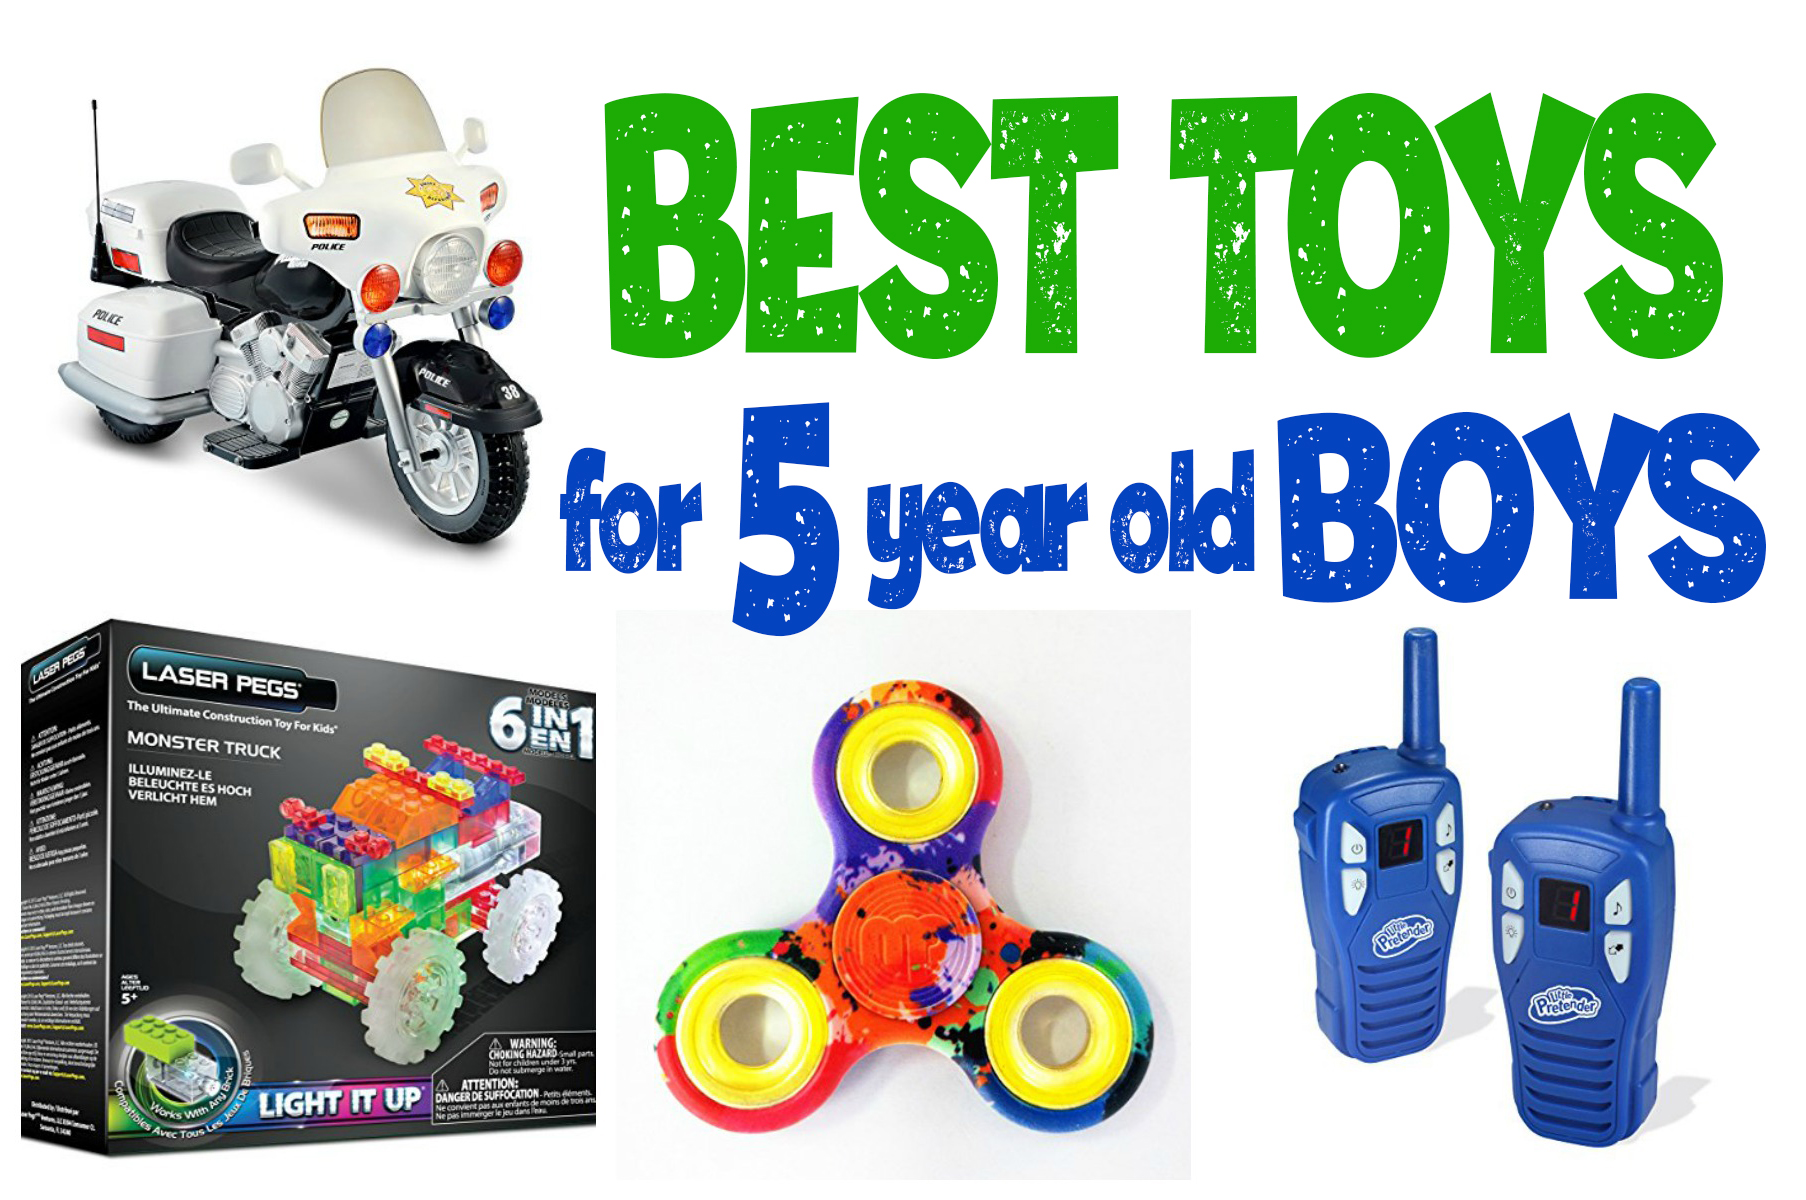 whatre-the-best-gifts-for-5-year-old-boys.jpg